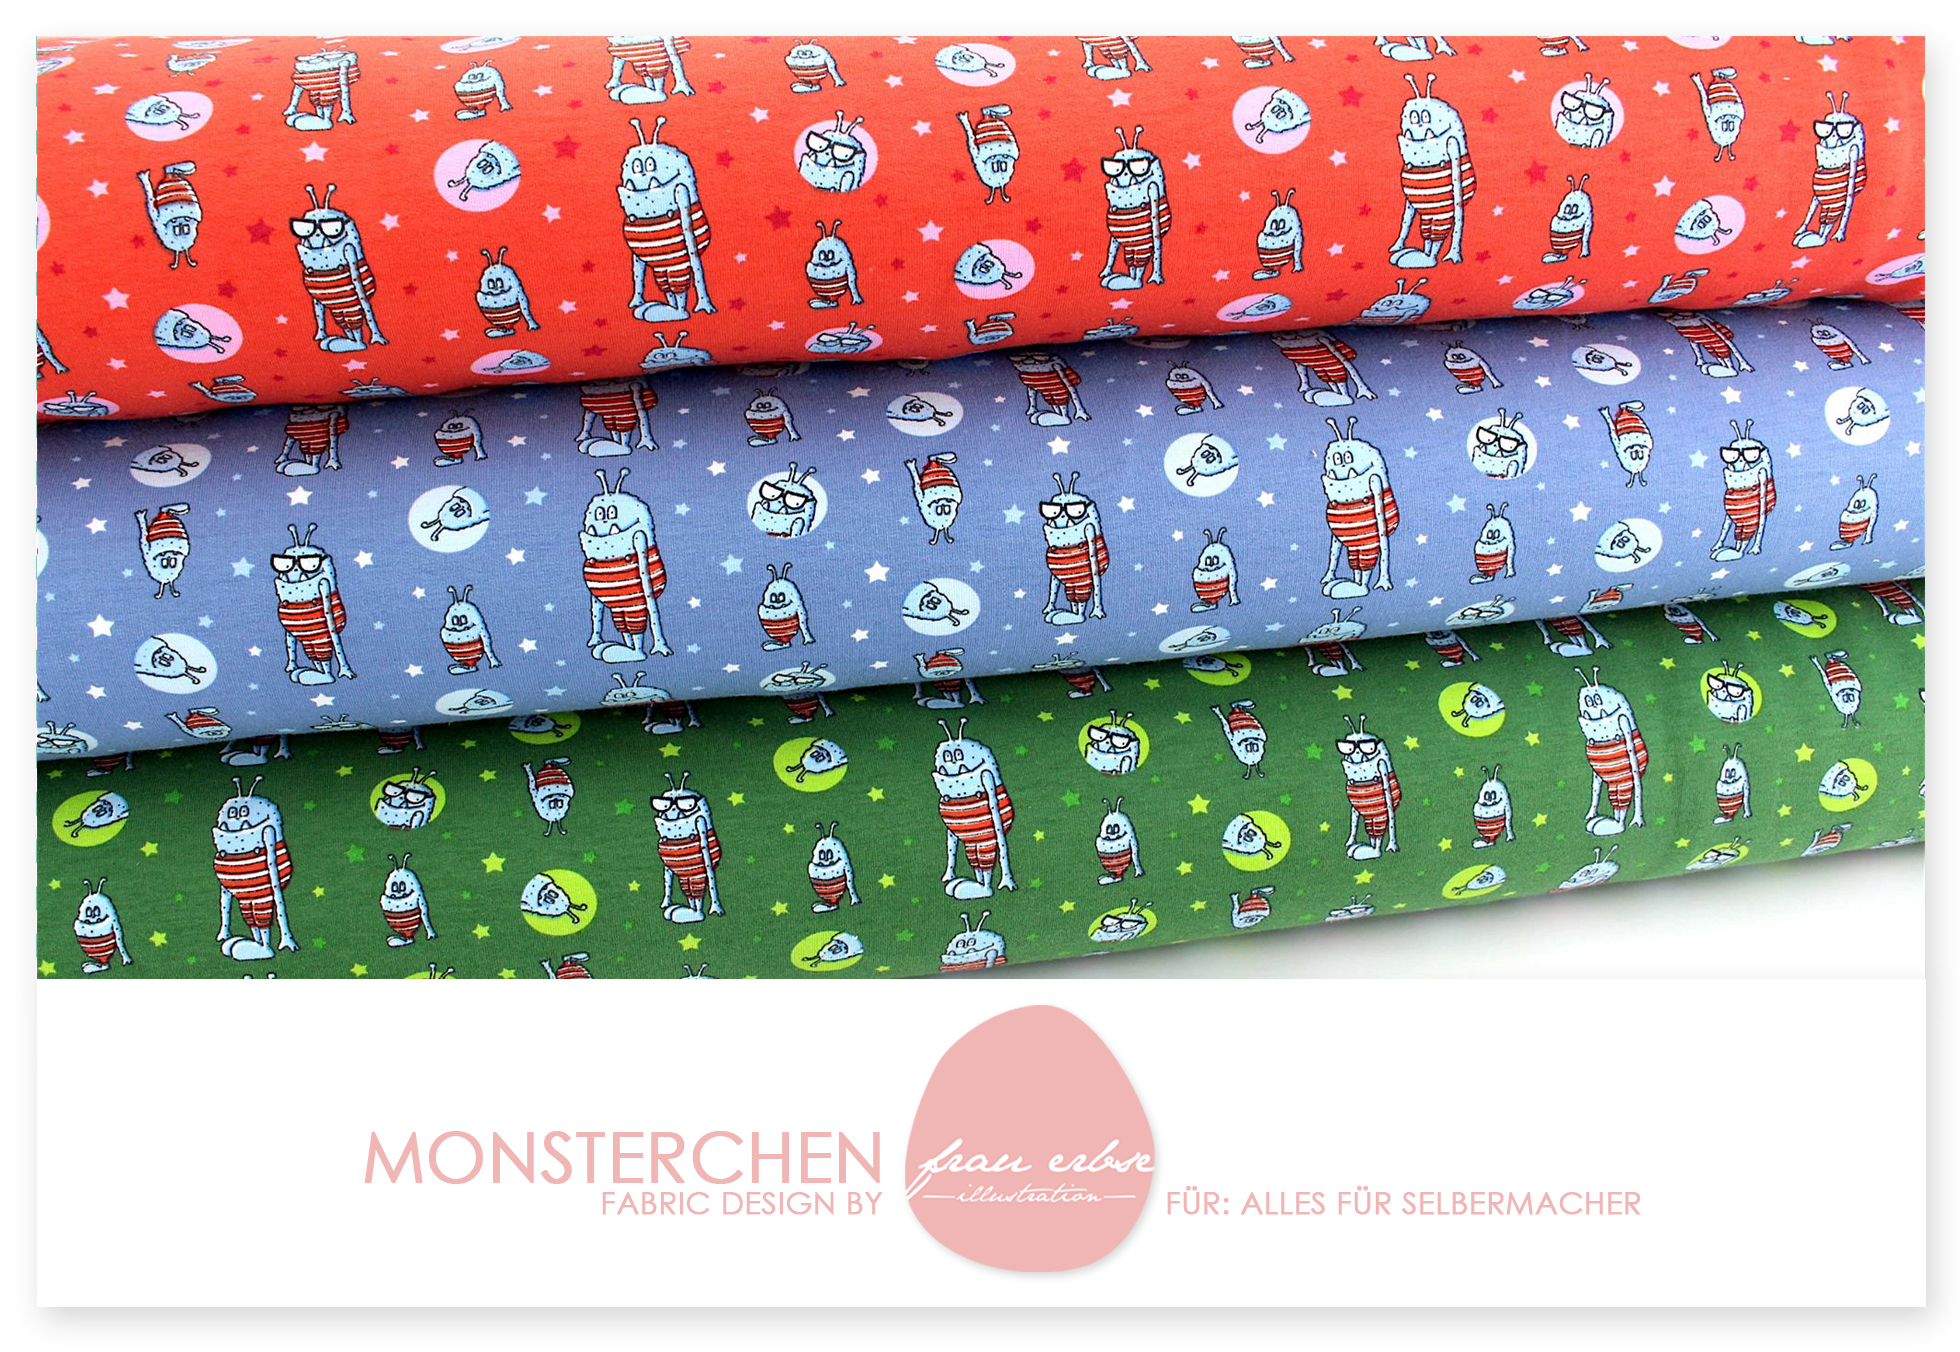 Stoffdesign Monsterchen